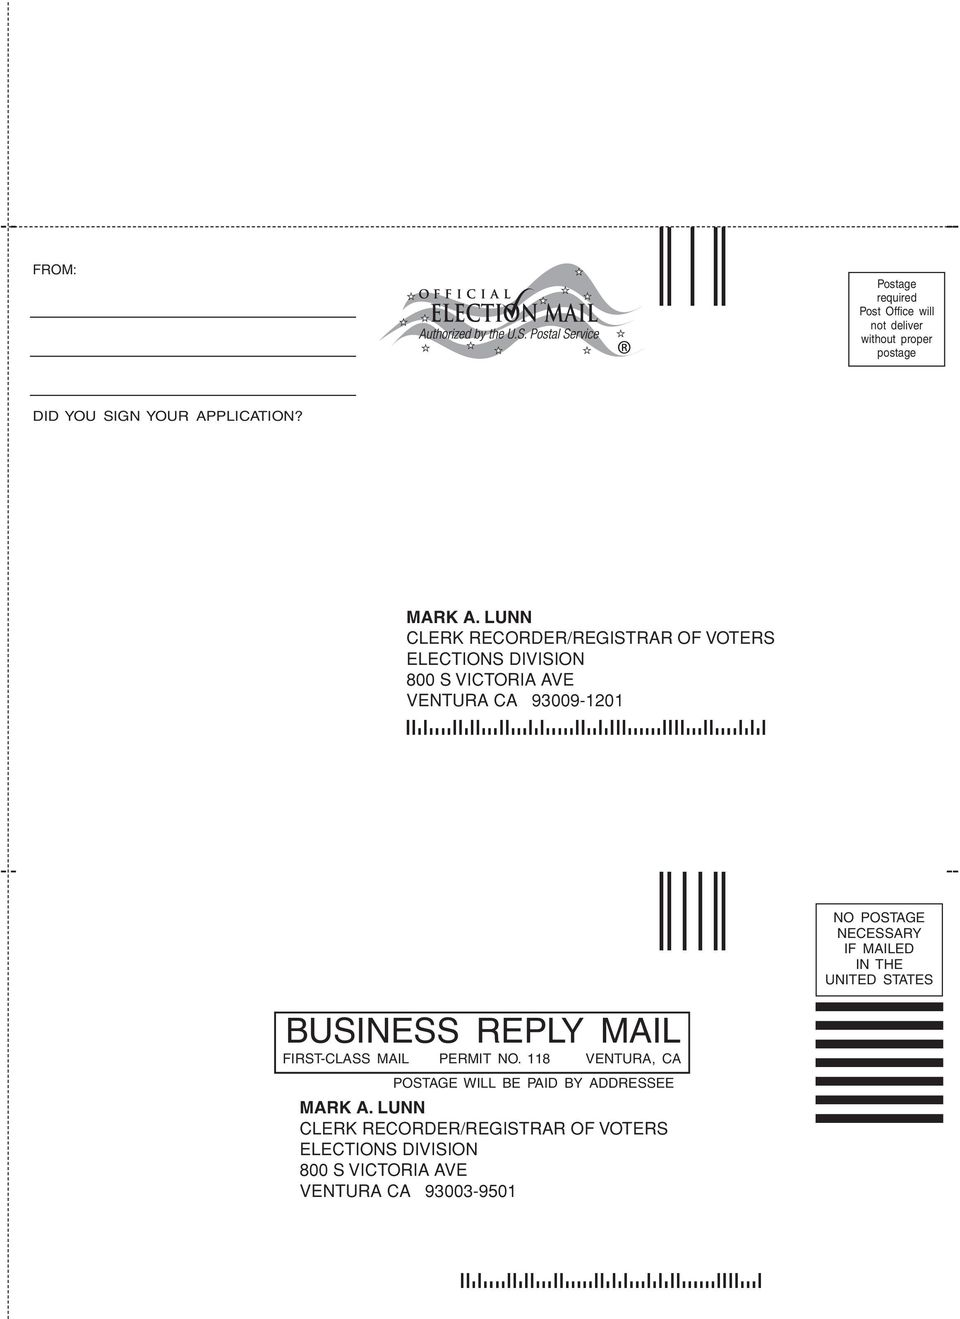 POSTAGE NECESSARY IF MAILED IN THE UNITED STATES BUSINESS REPLY MAIL FIRST-CLASS MAIL PERMIT NO.